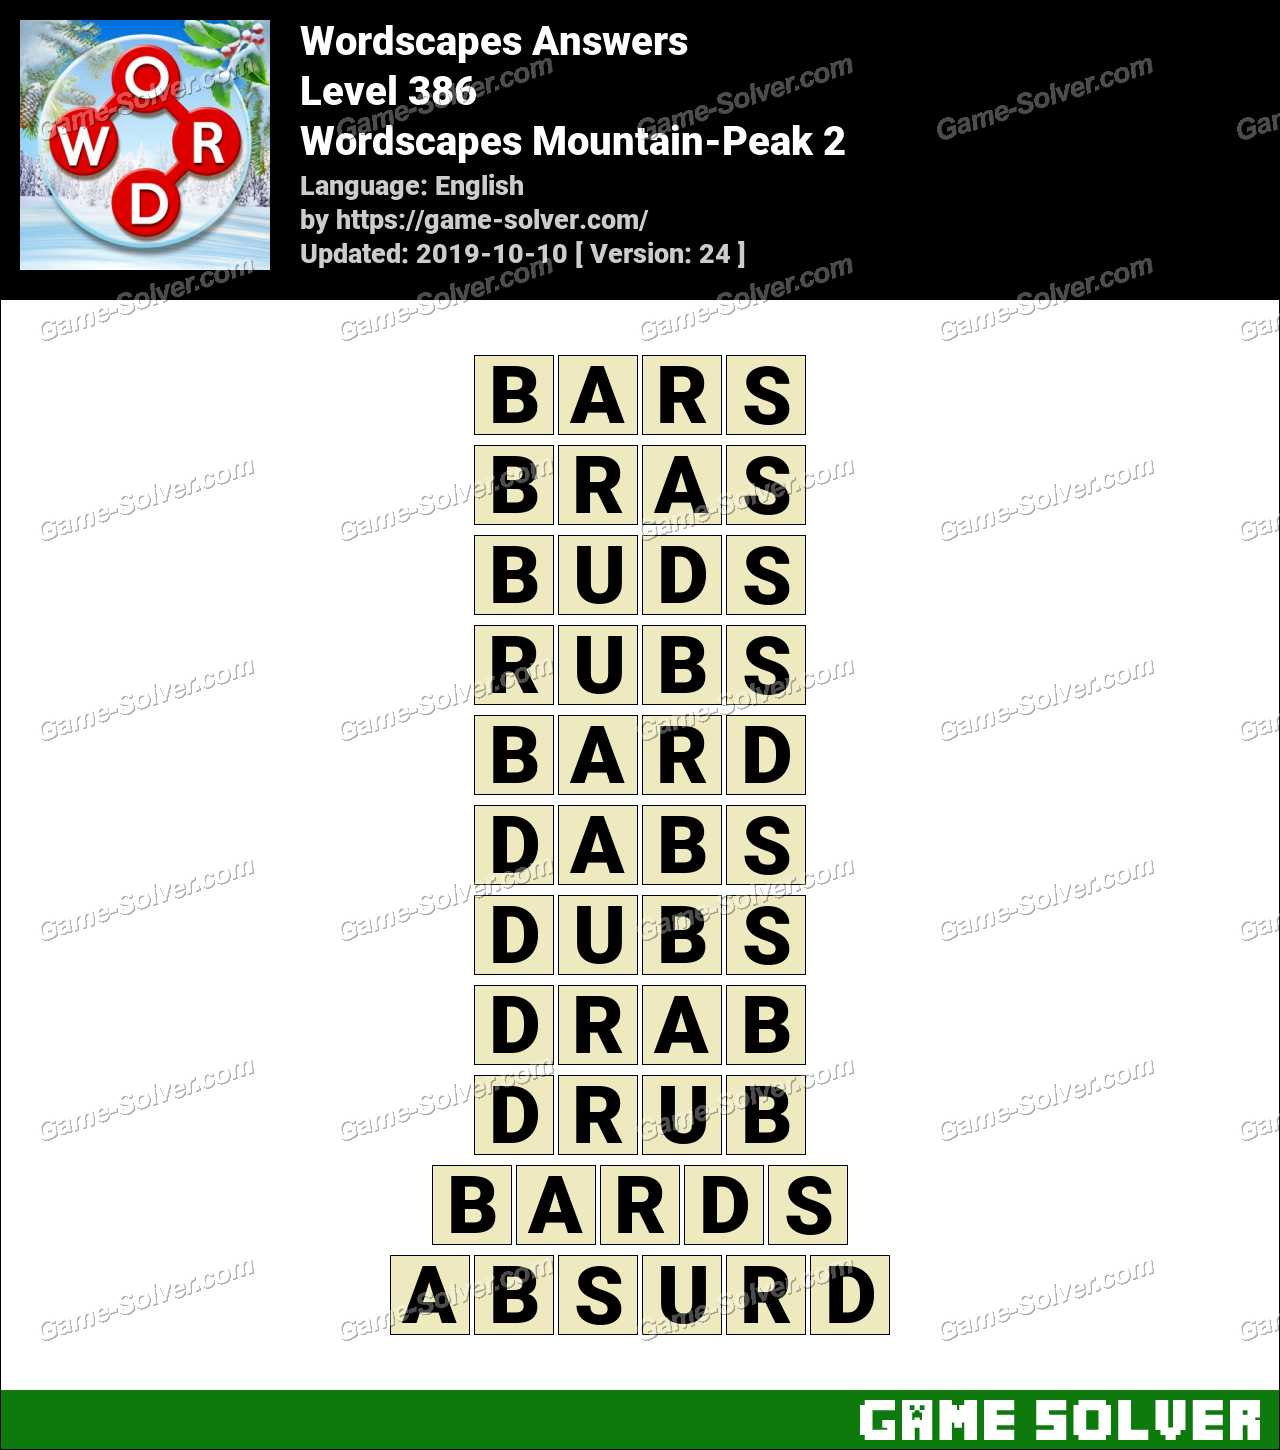 Wordscapes Mountain-Peak 2 Answers